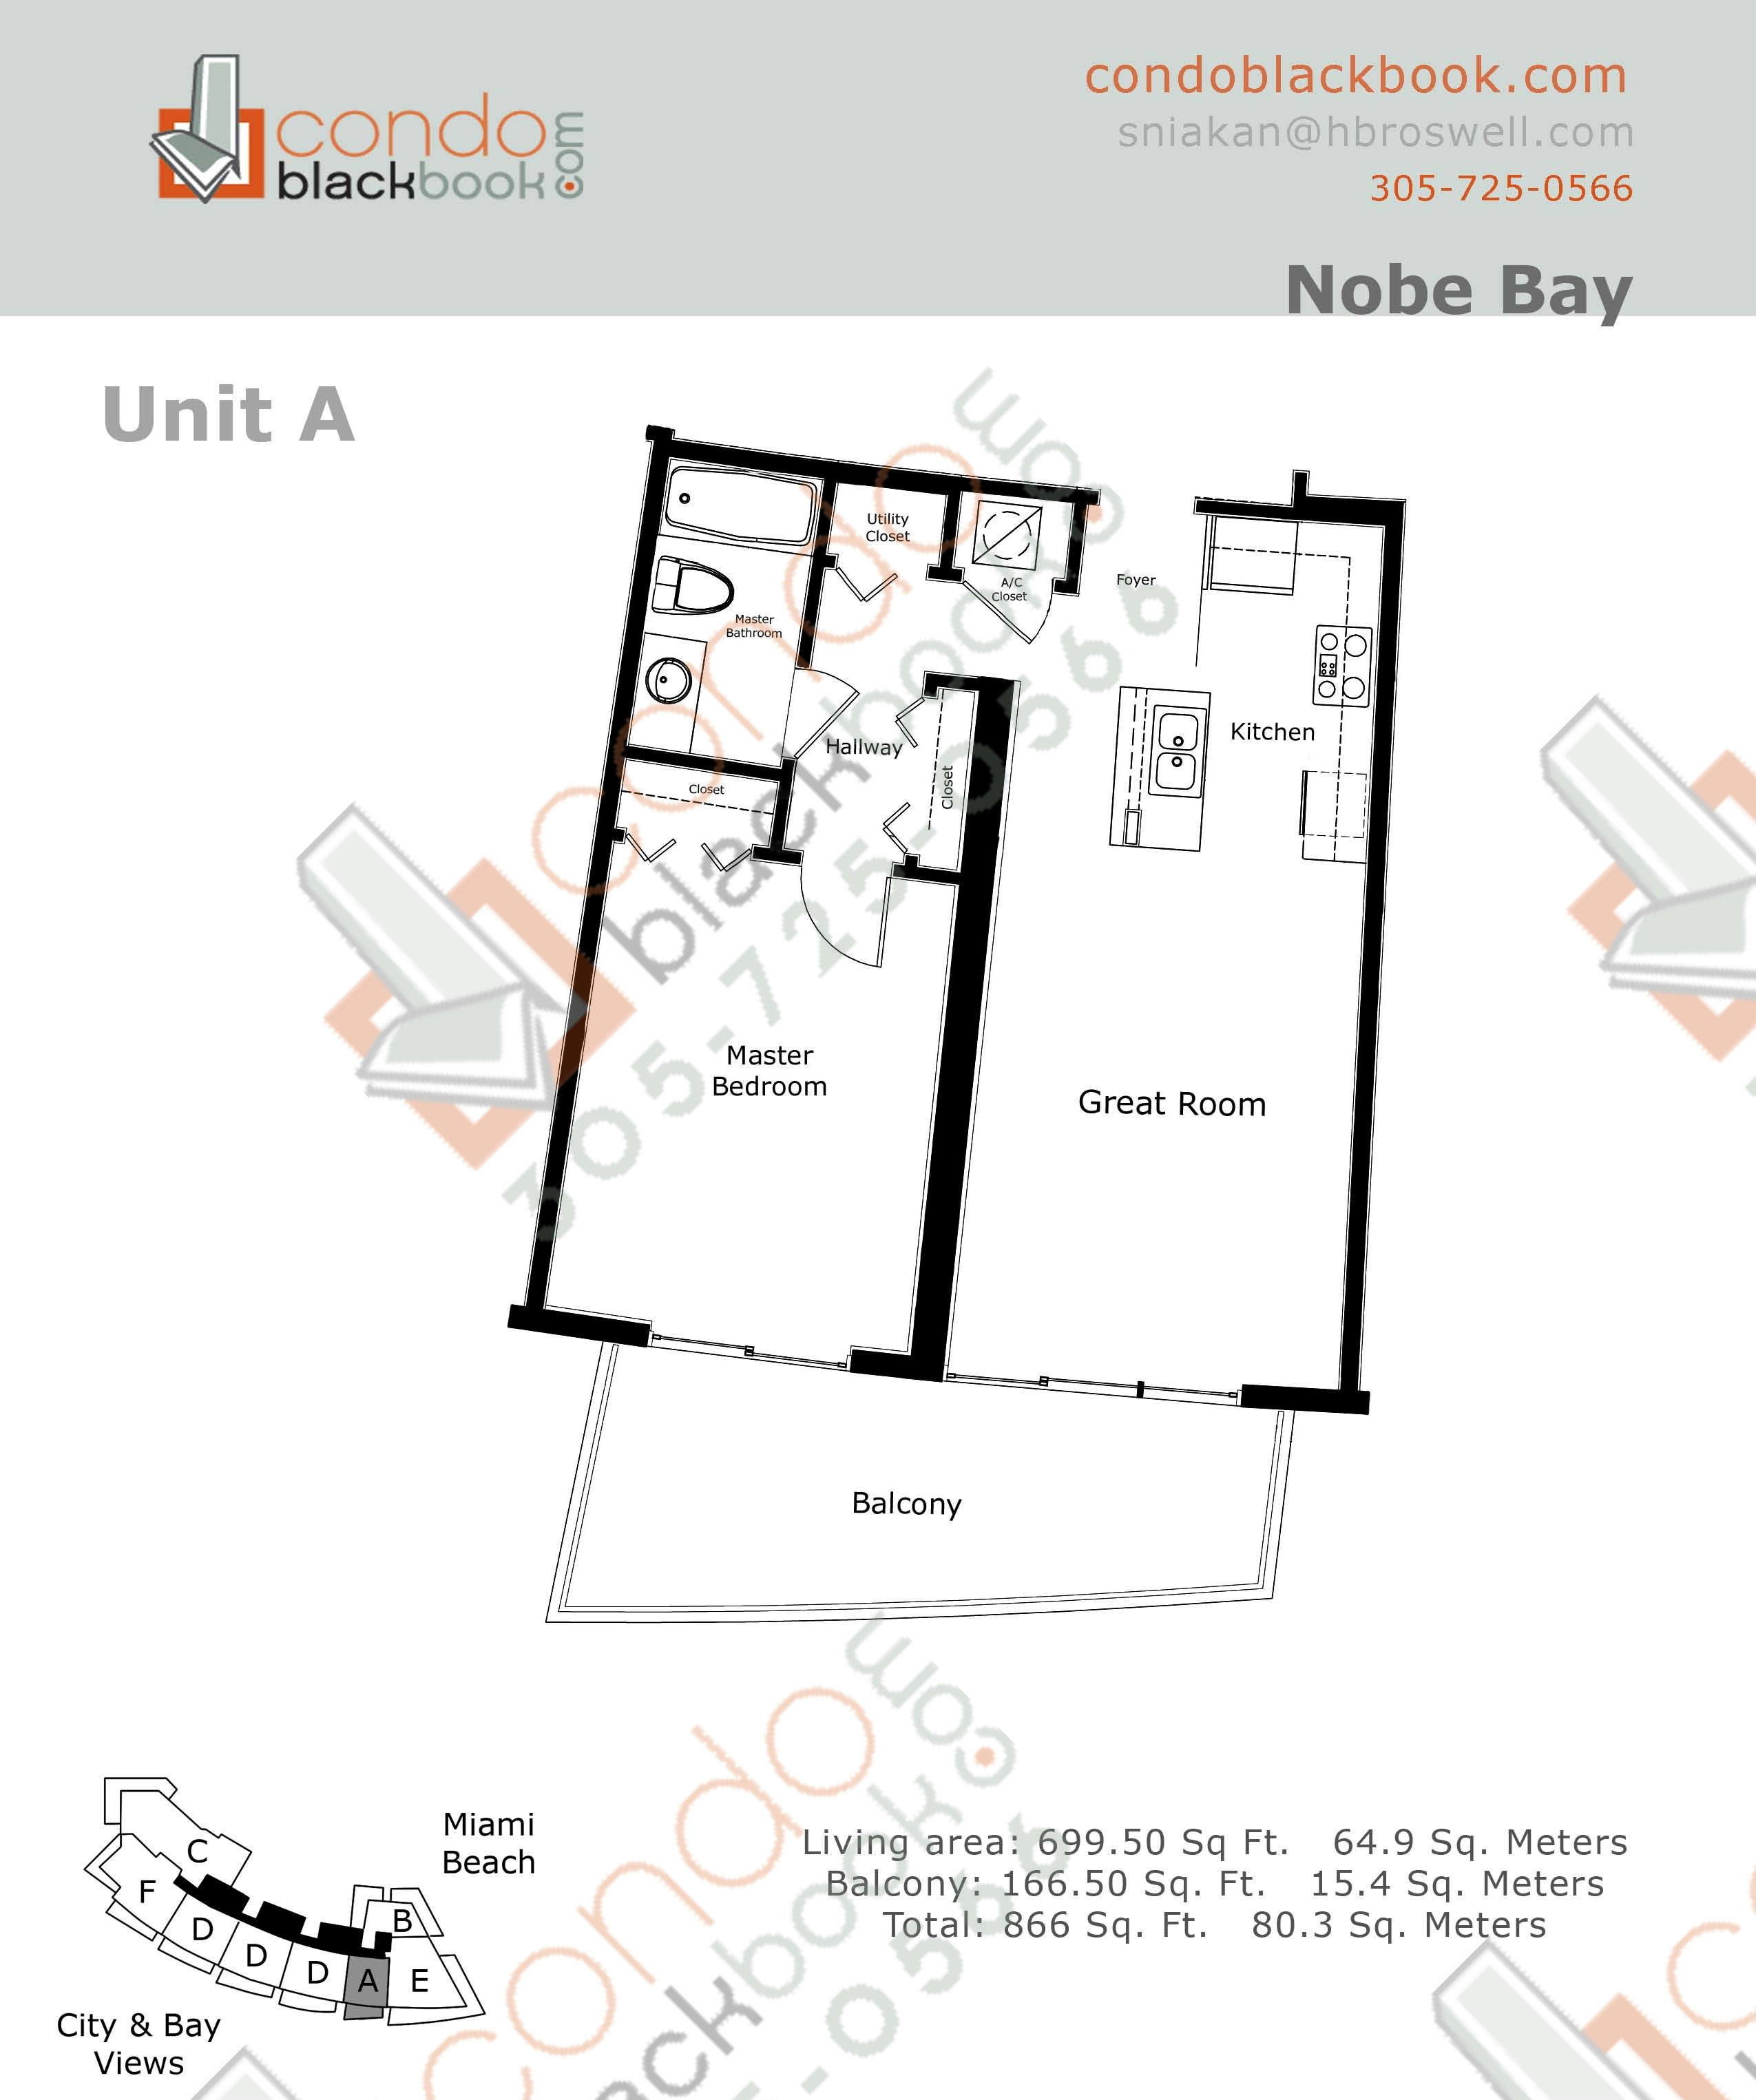 Floor plan for Eden House North Beach Miami Beach, model A, line 01, 1/1 bedrooms, 700 sq ft